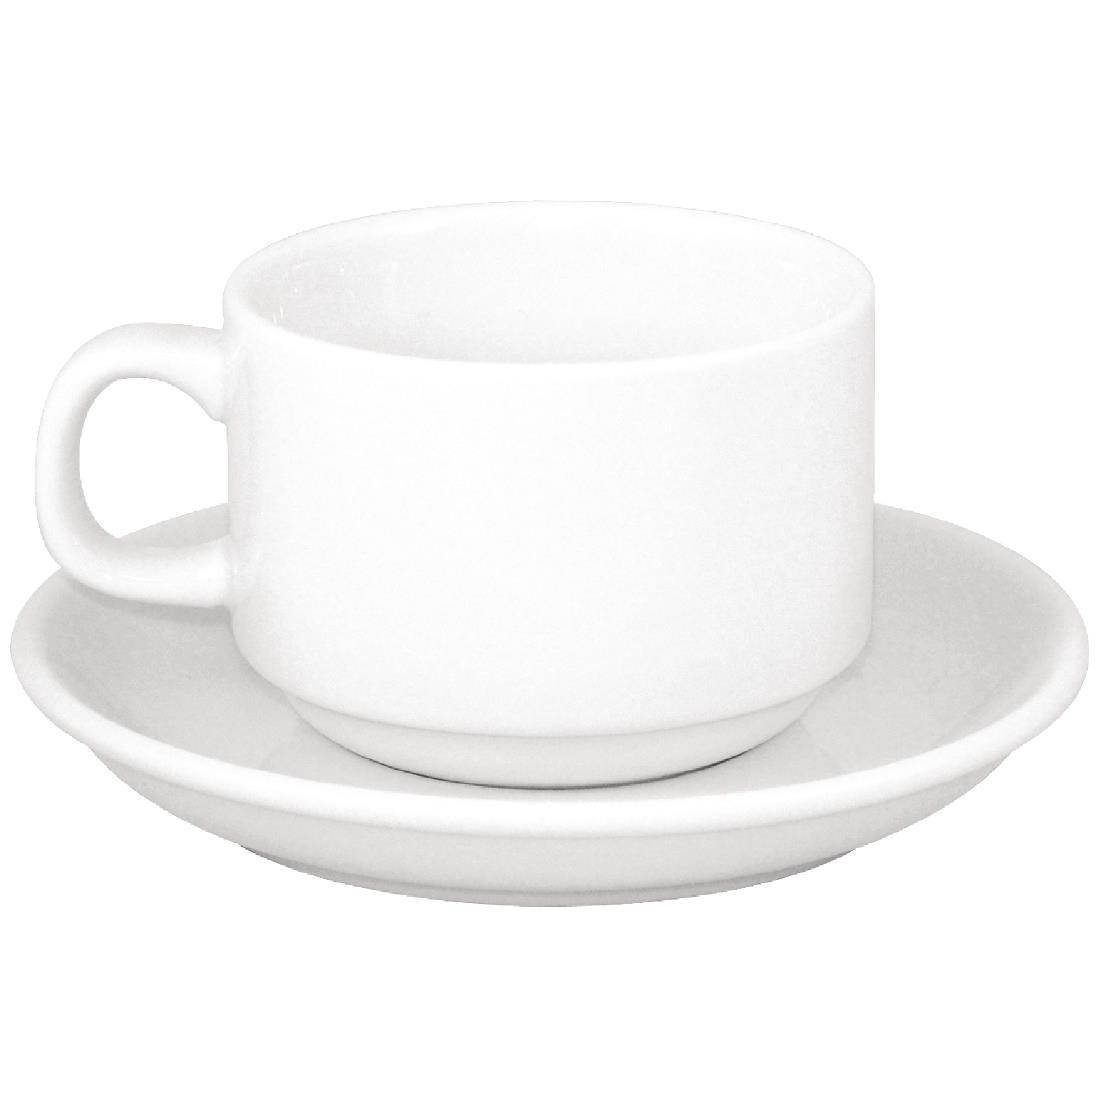 ... Sale Offer : Athena Hotelware Stacking Cup CC200 & Saucer CC202 (Box  24) Combo